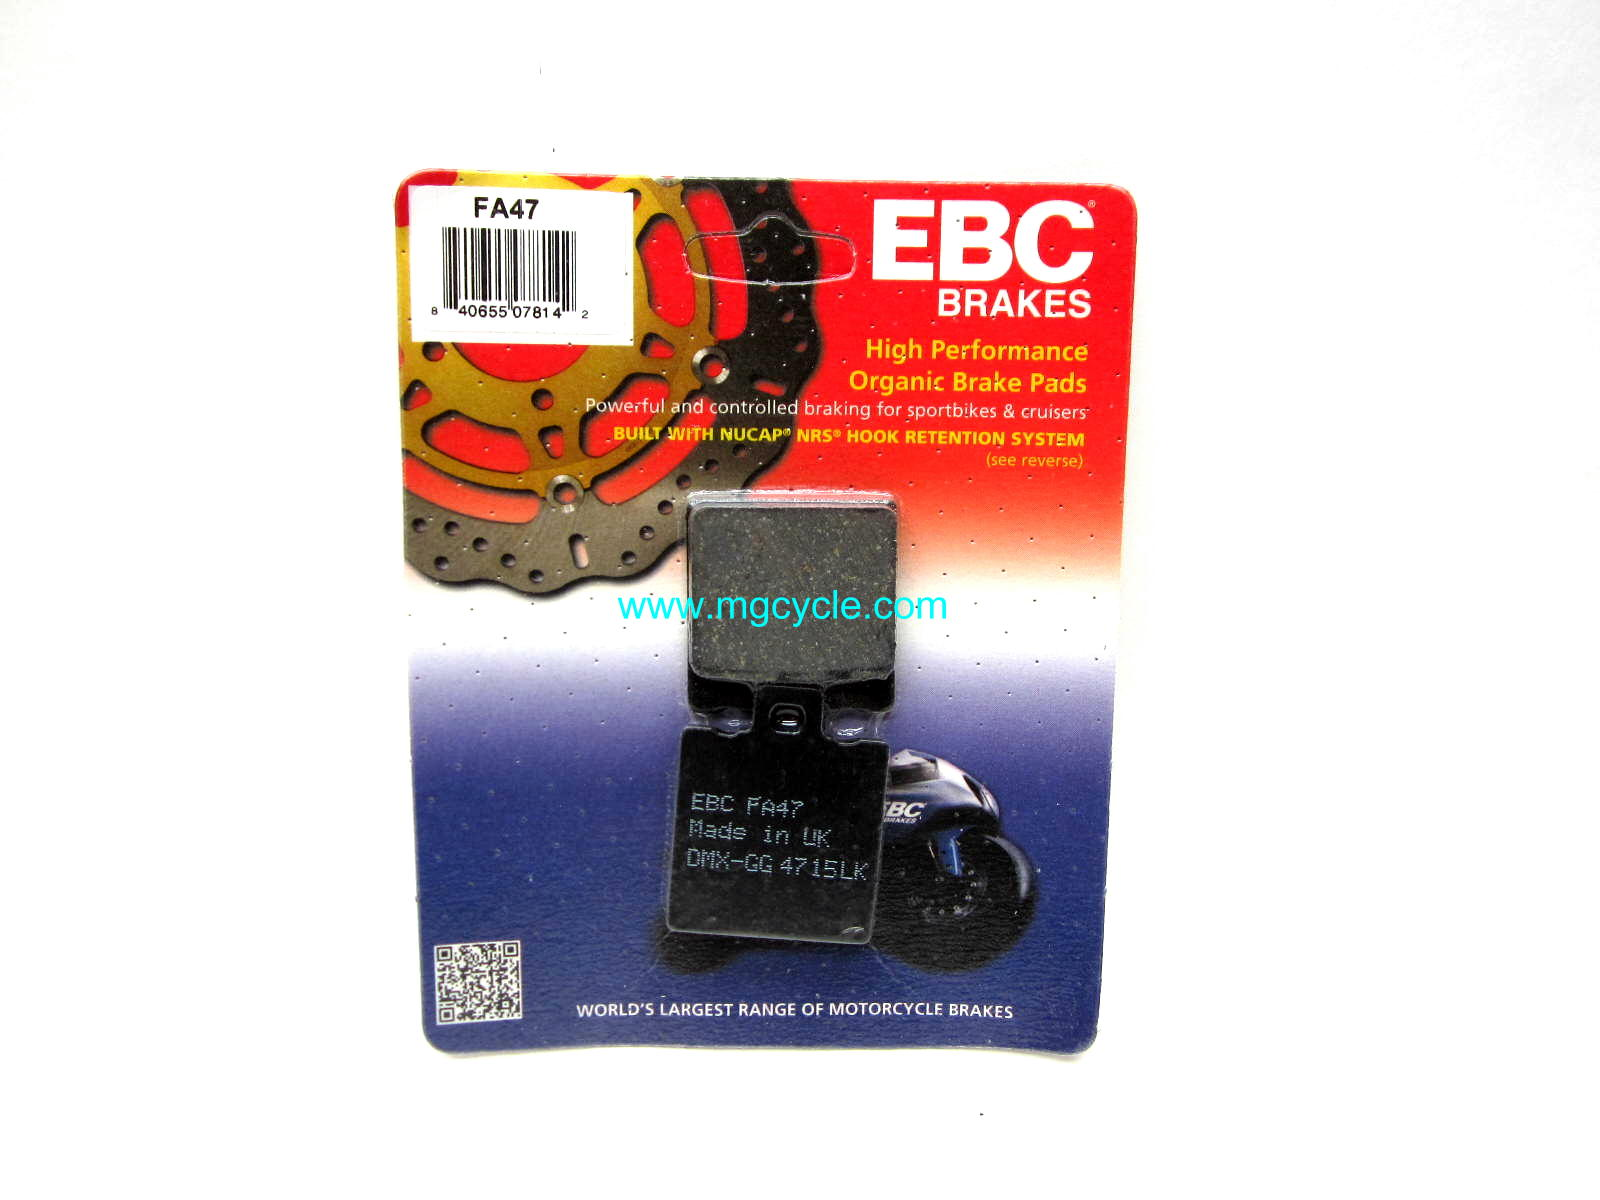 EBC kevlar organic brake pads, F05 small twins, Spine frame rear